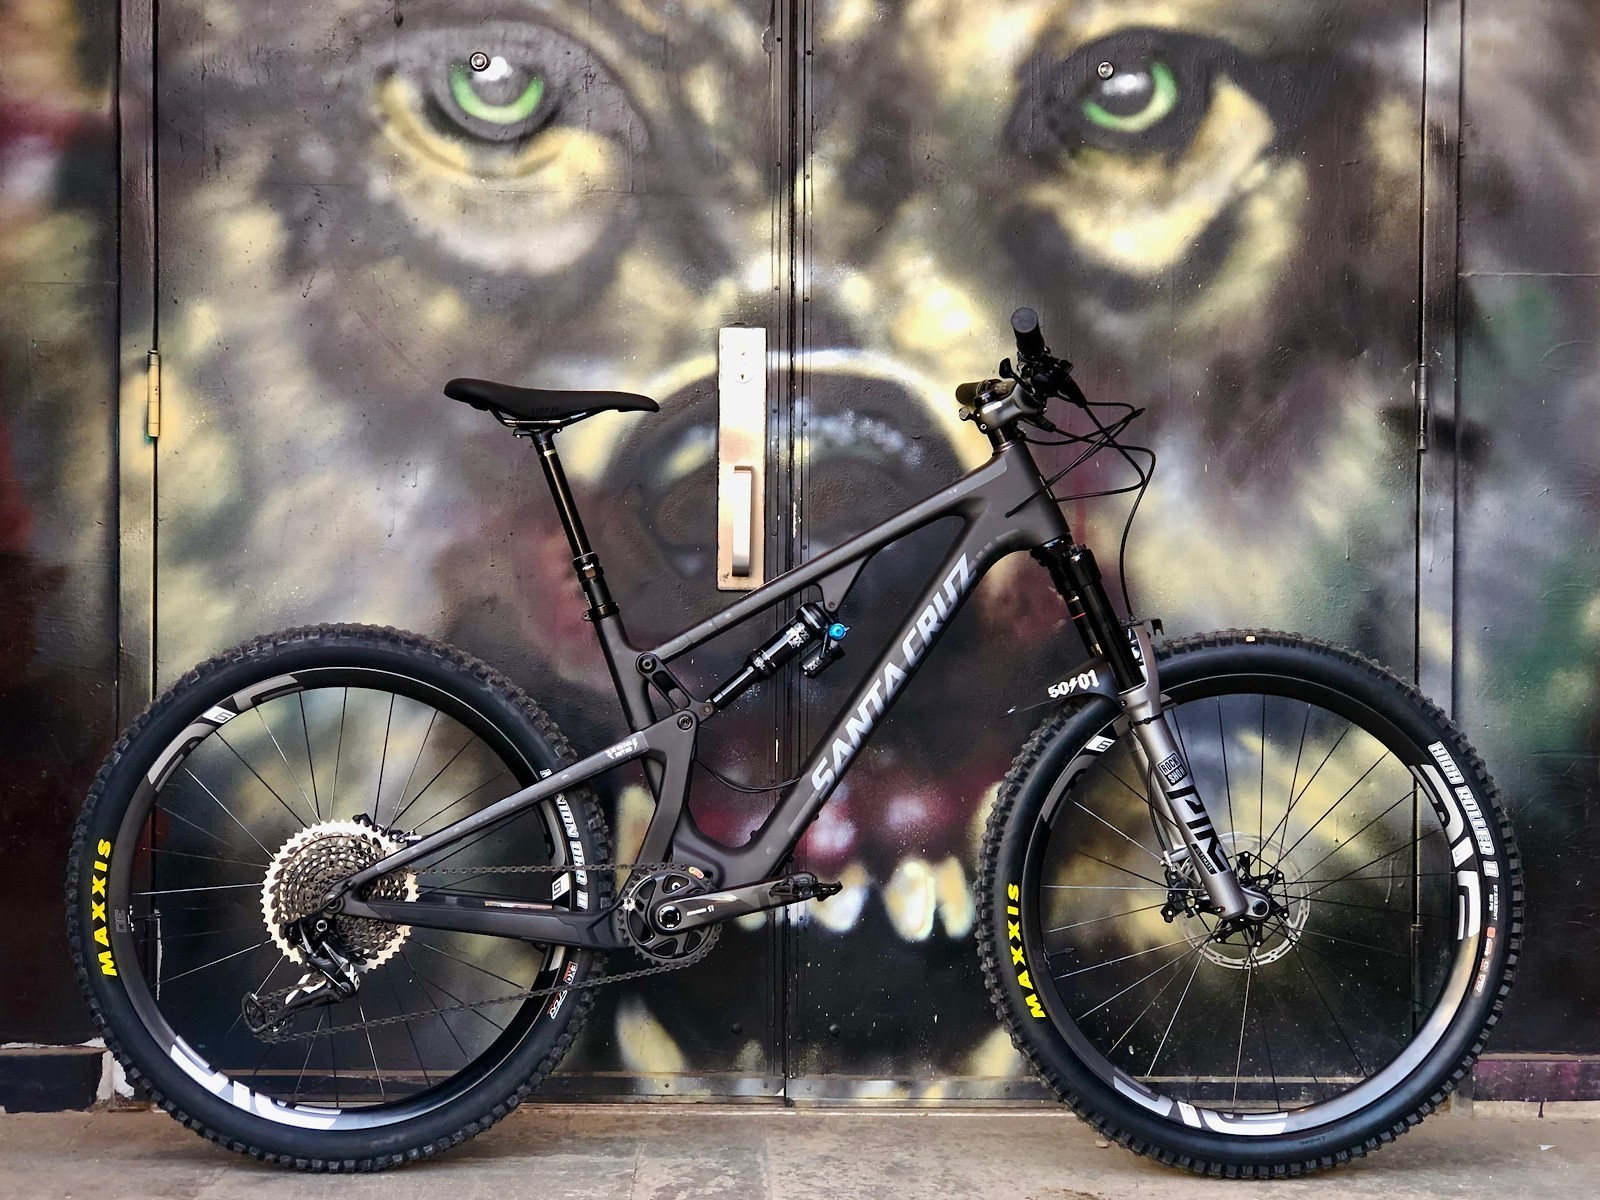 Santa Cruz 5010 - 2019 Vital Bike of the Day Collection - Mountain Biking Pictures - Vital MTB